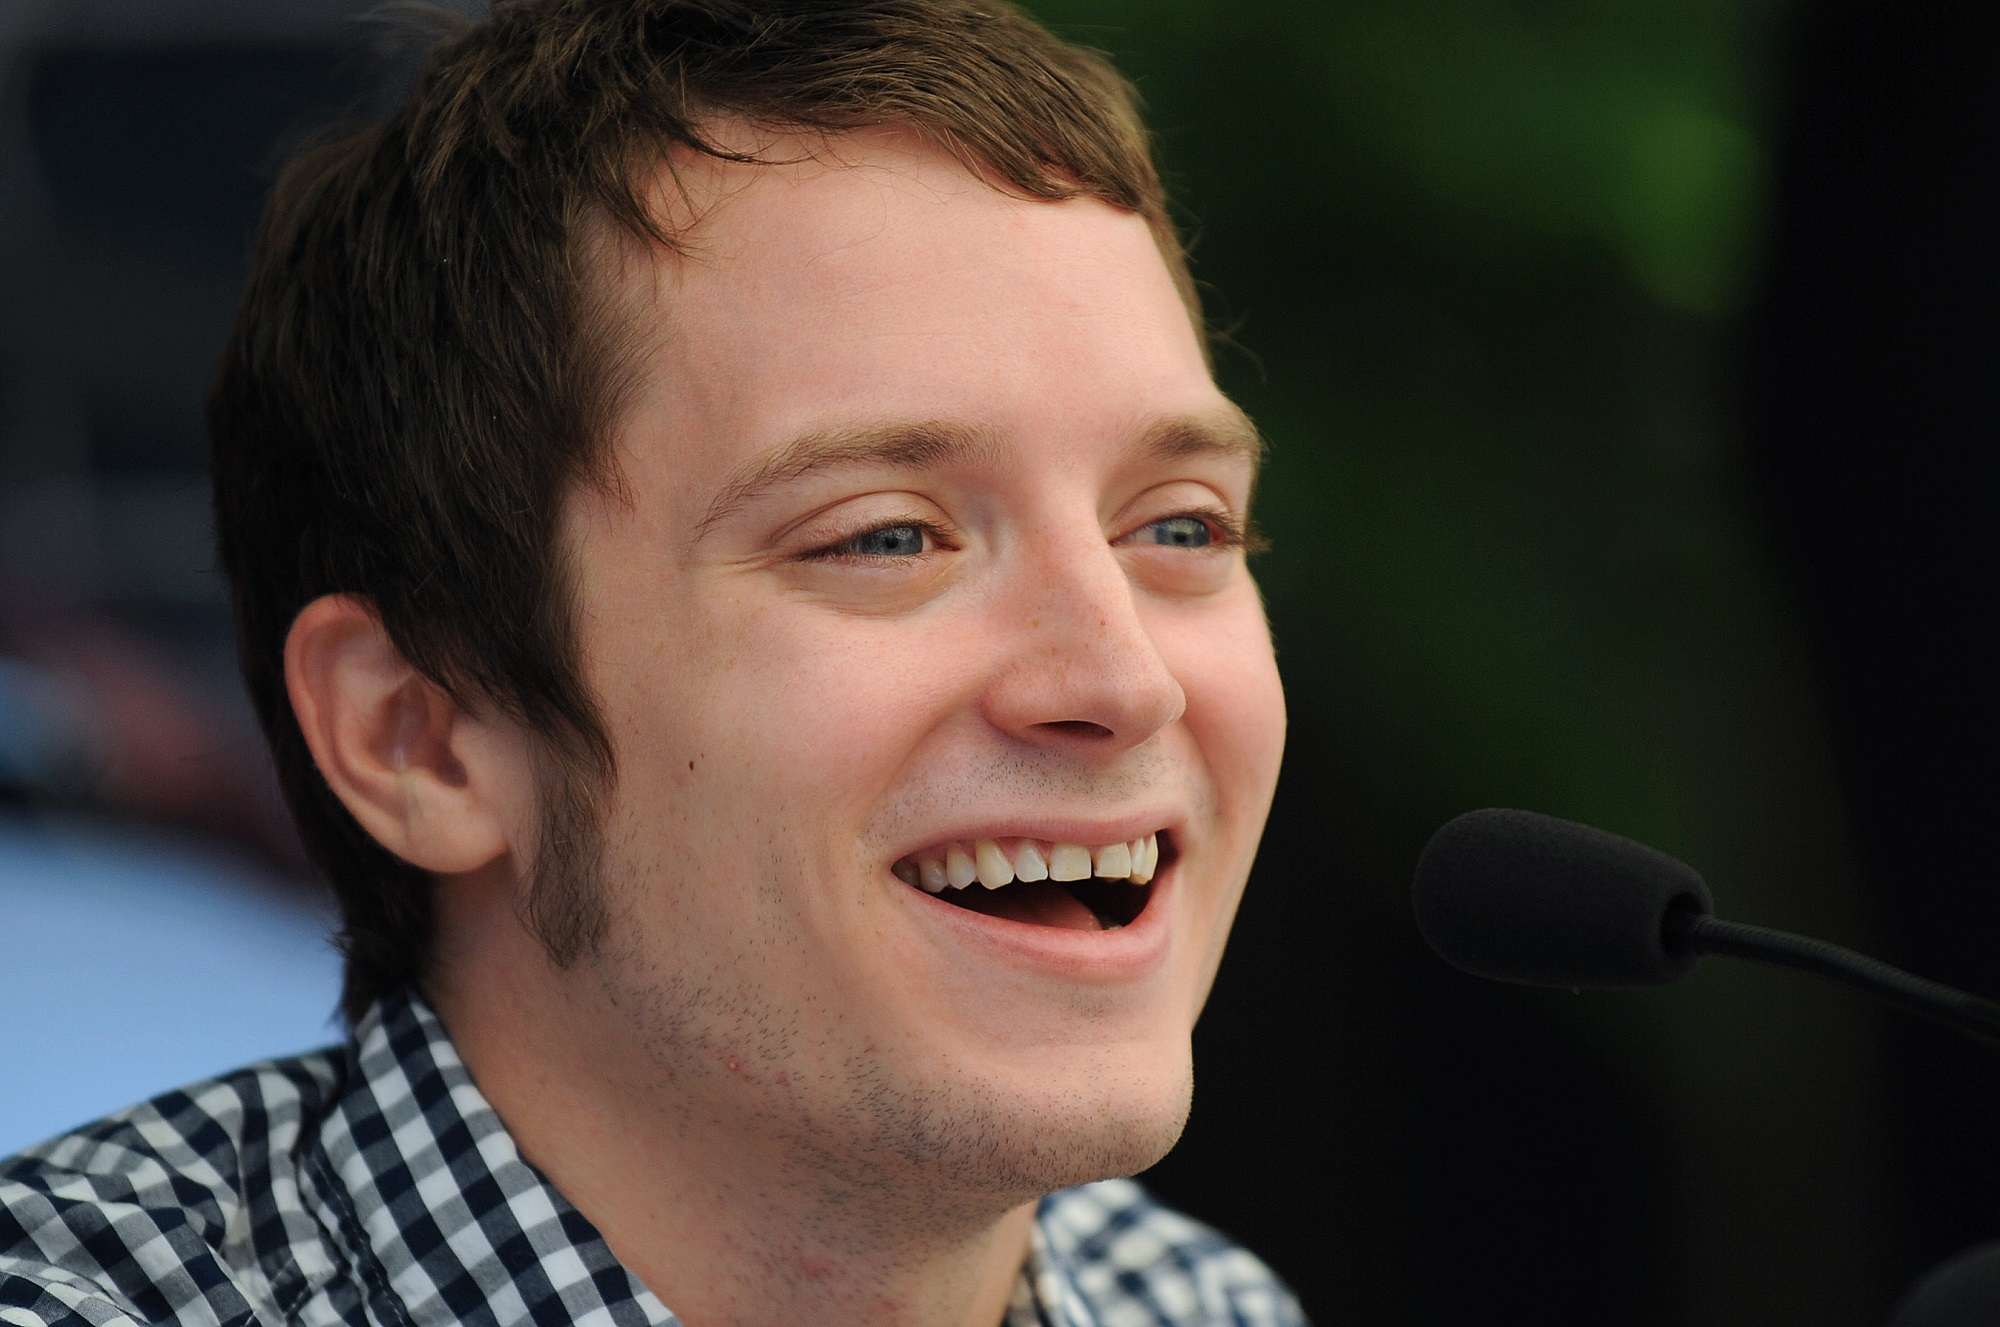 Elijah Wood of Lord of the Rings